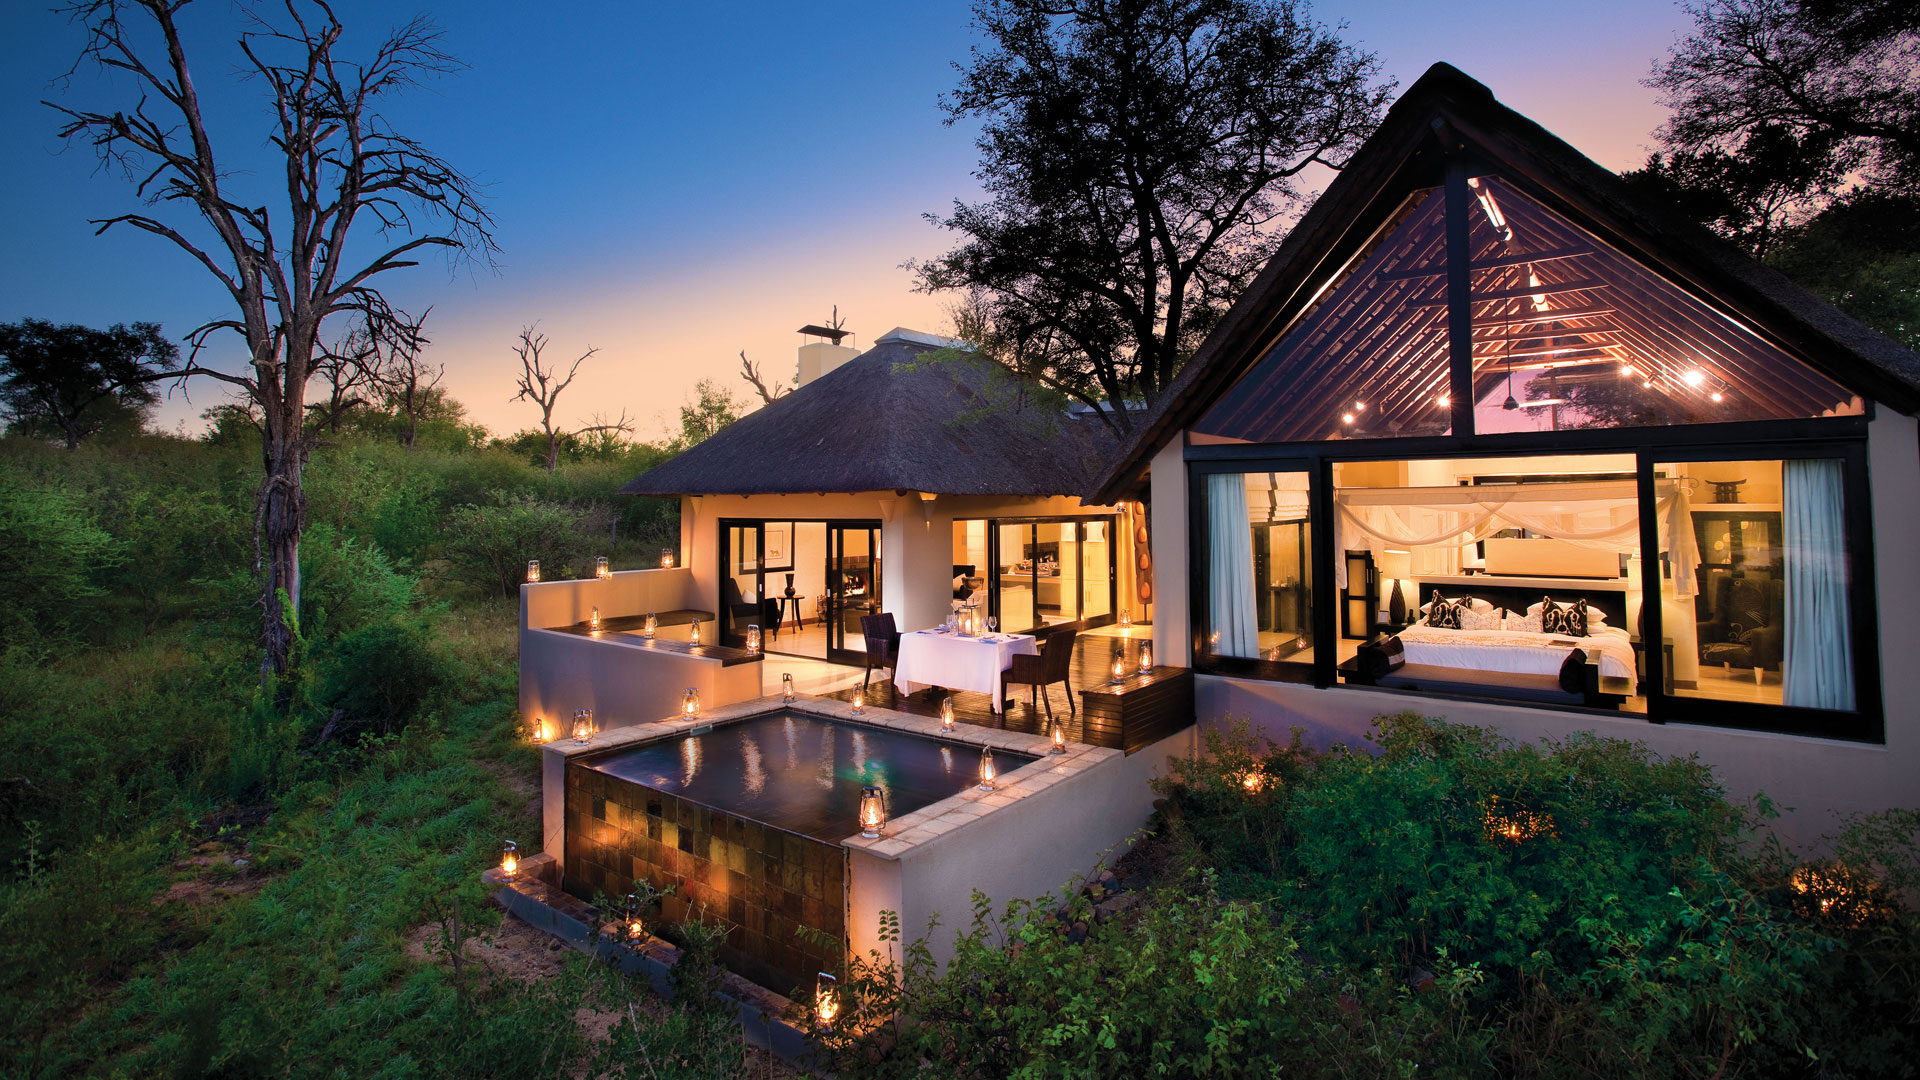 Accommodations South Africa Safari Accommodation Lodges In South Africa Natural World Safaris